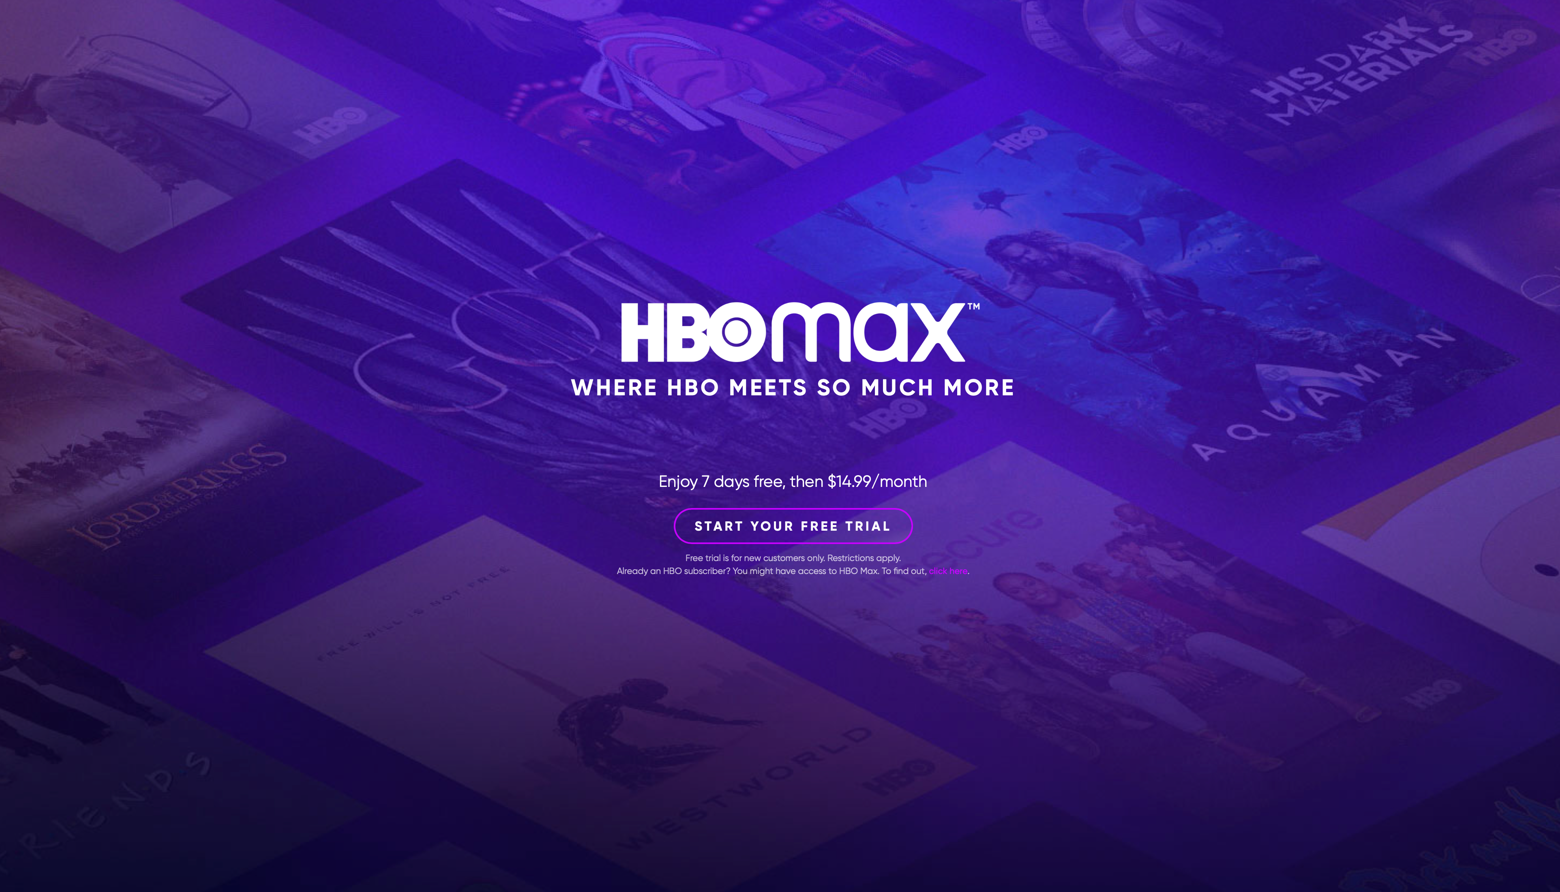 HBO Max cost